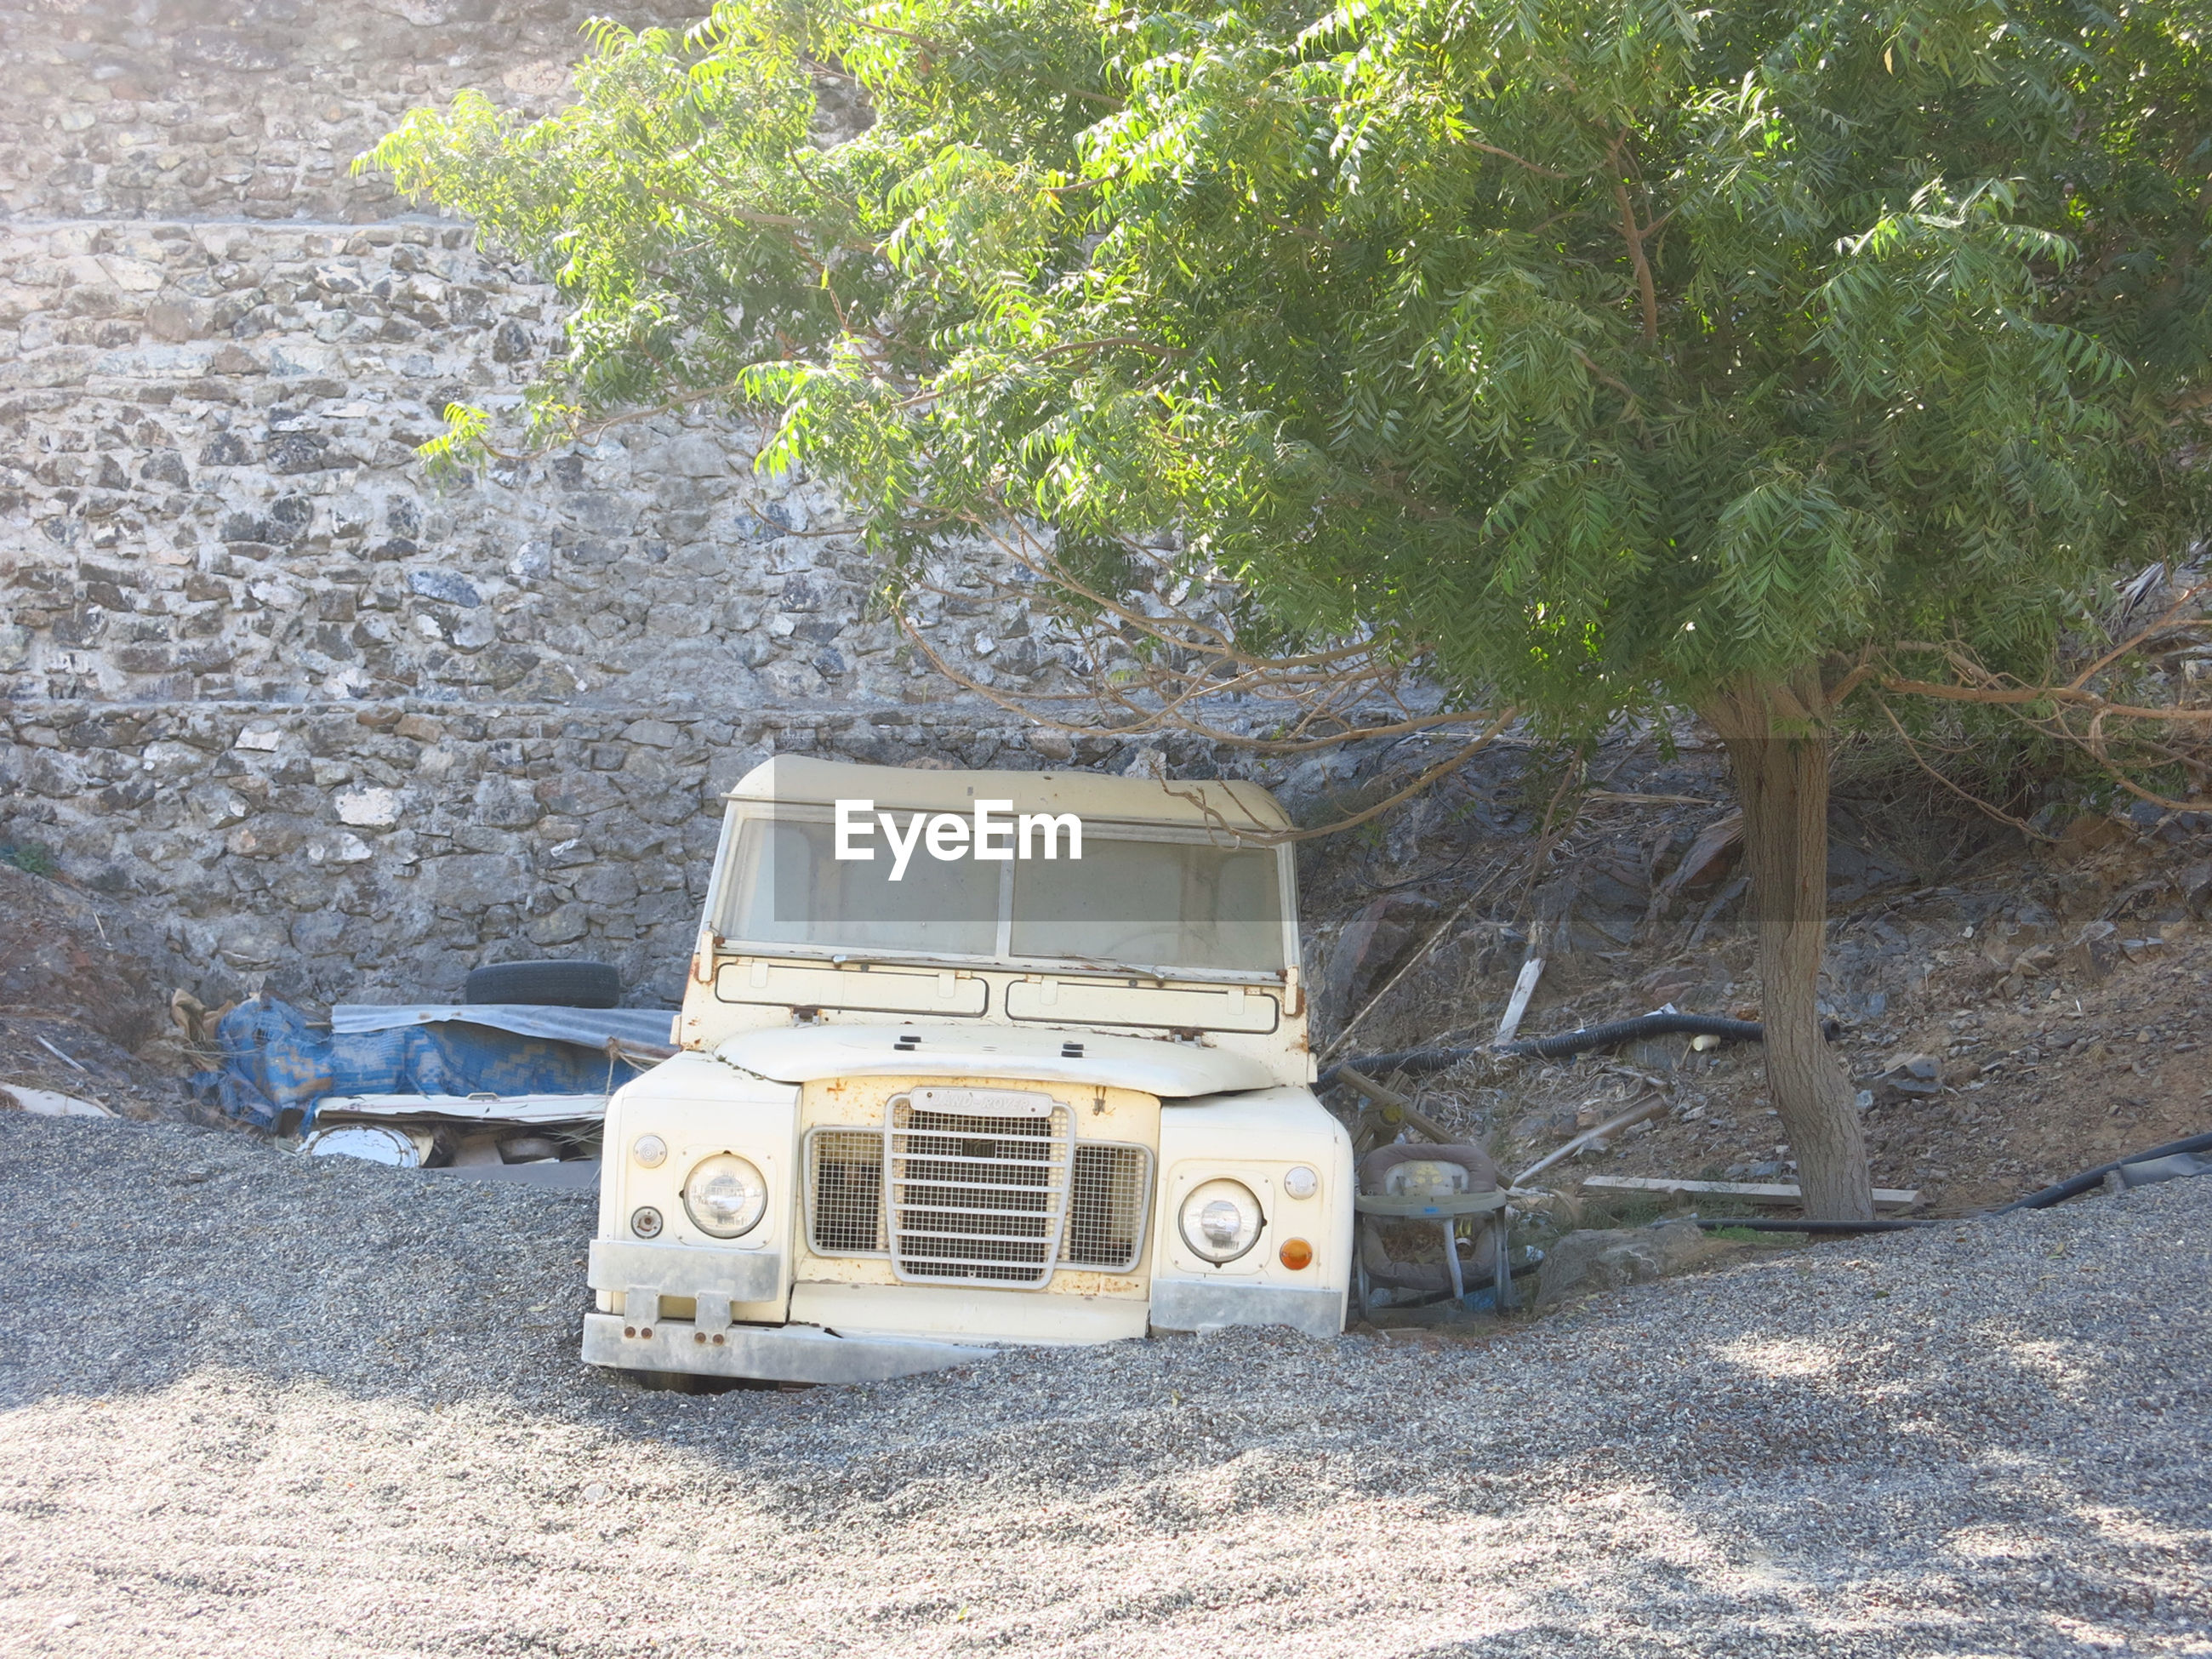 Abandoned vehicle on sand by tree